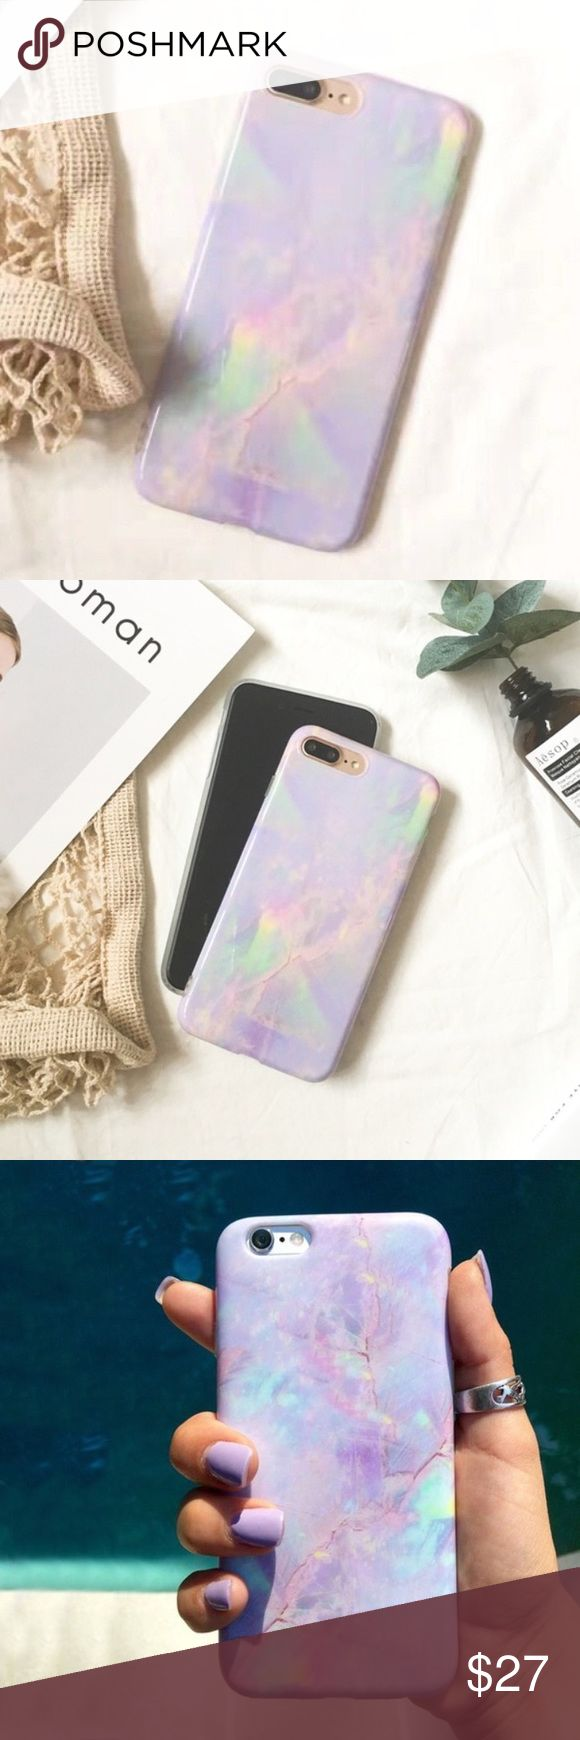 30% OFF: new Marble purple pastel 6/6S iphone case New marble rainbow phone case for iPhone 6/6s! Comes brand new in packaging. This colorful pastel phone case for iPhone 6/6s is perfect for spring! Like this listing to be notified of price drops or add to a bundle to get 30% off 2 discount! 😊❤️ Accessories Phone Cases